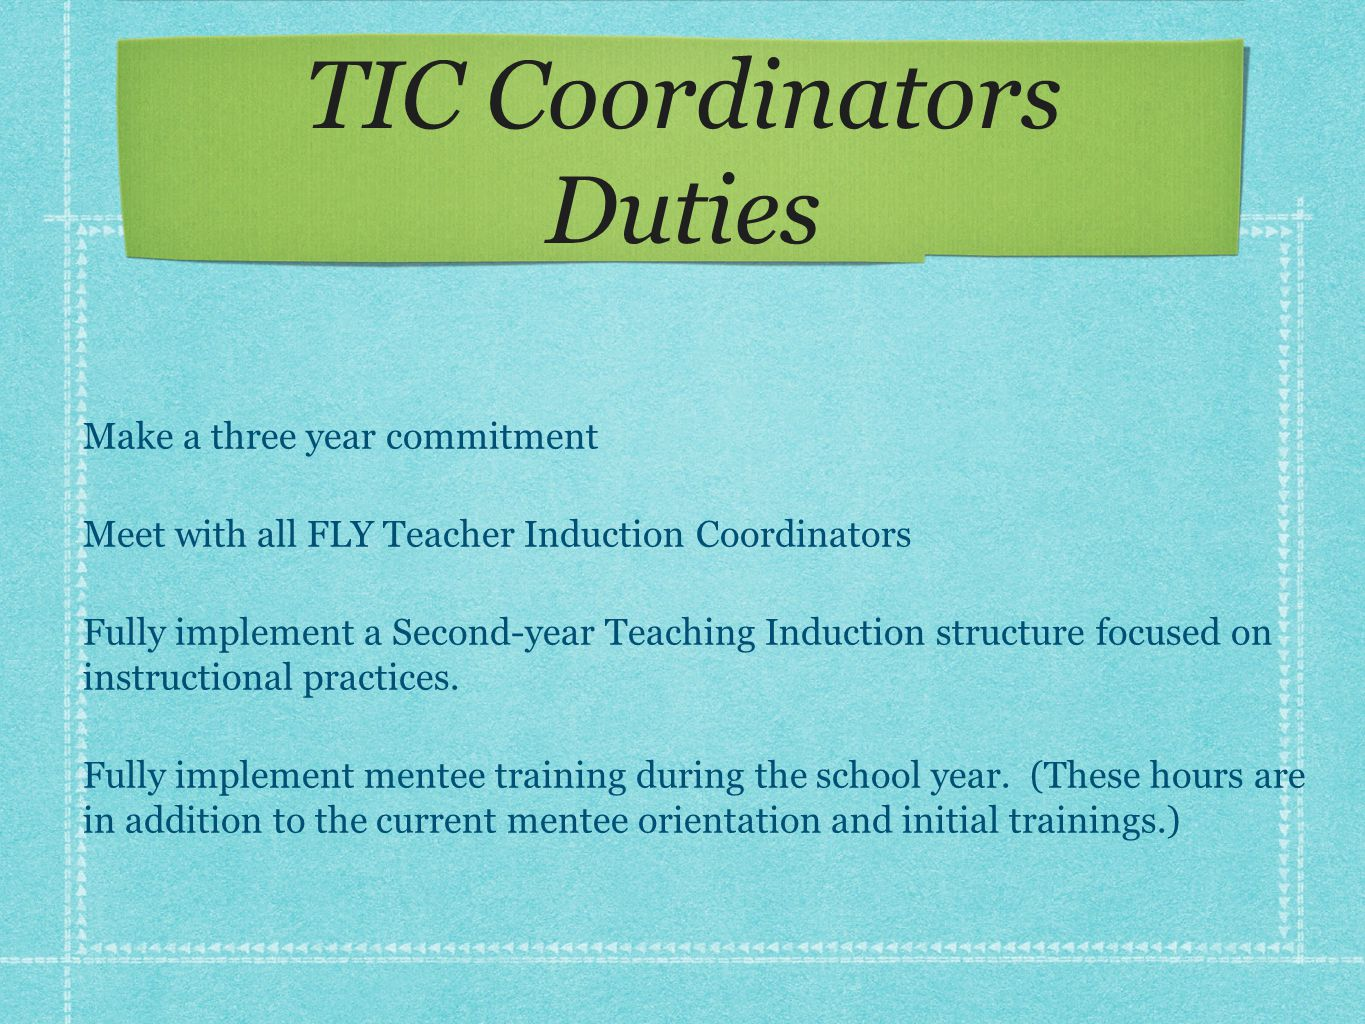 TIC Coordinators Duties Make a three year commitment Meet with all FLY Teacher Induction Coordinators Fully implement a Second-year Teaching Induction